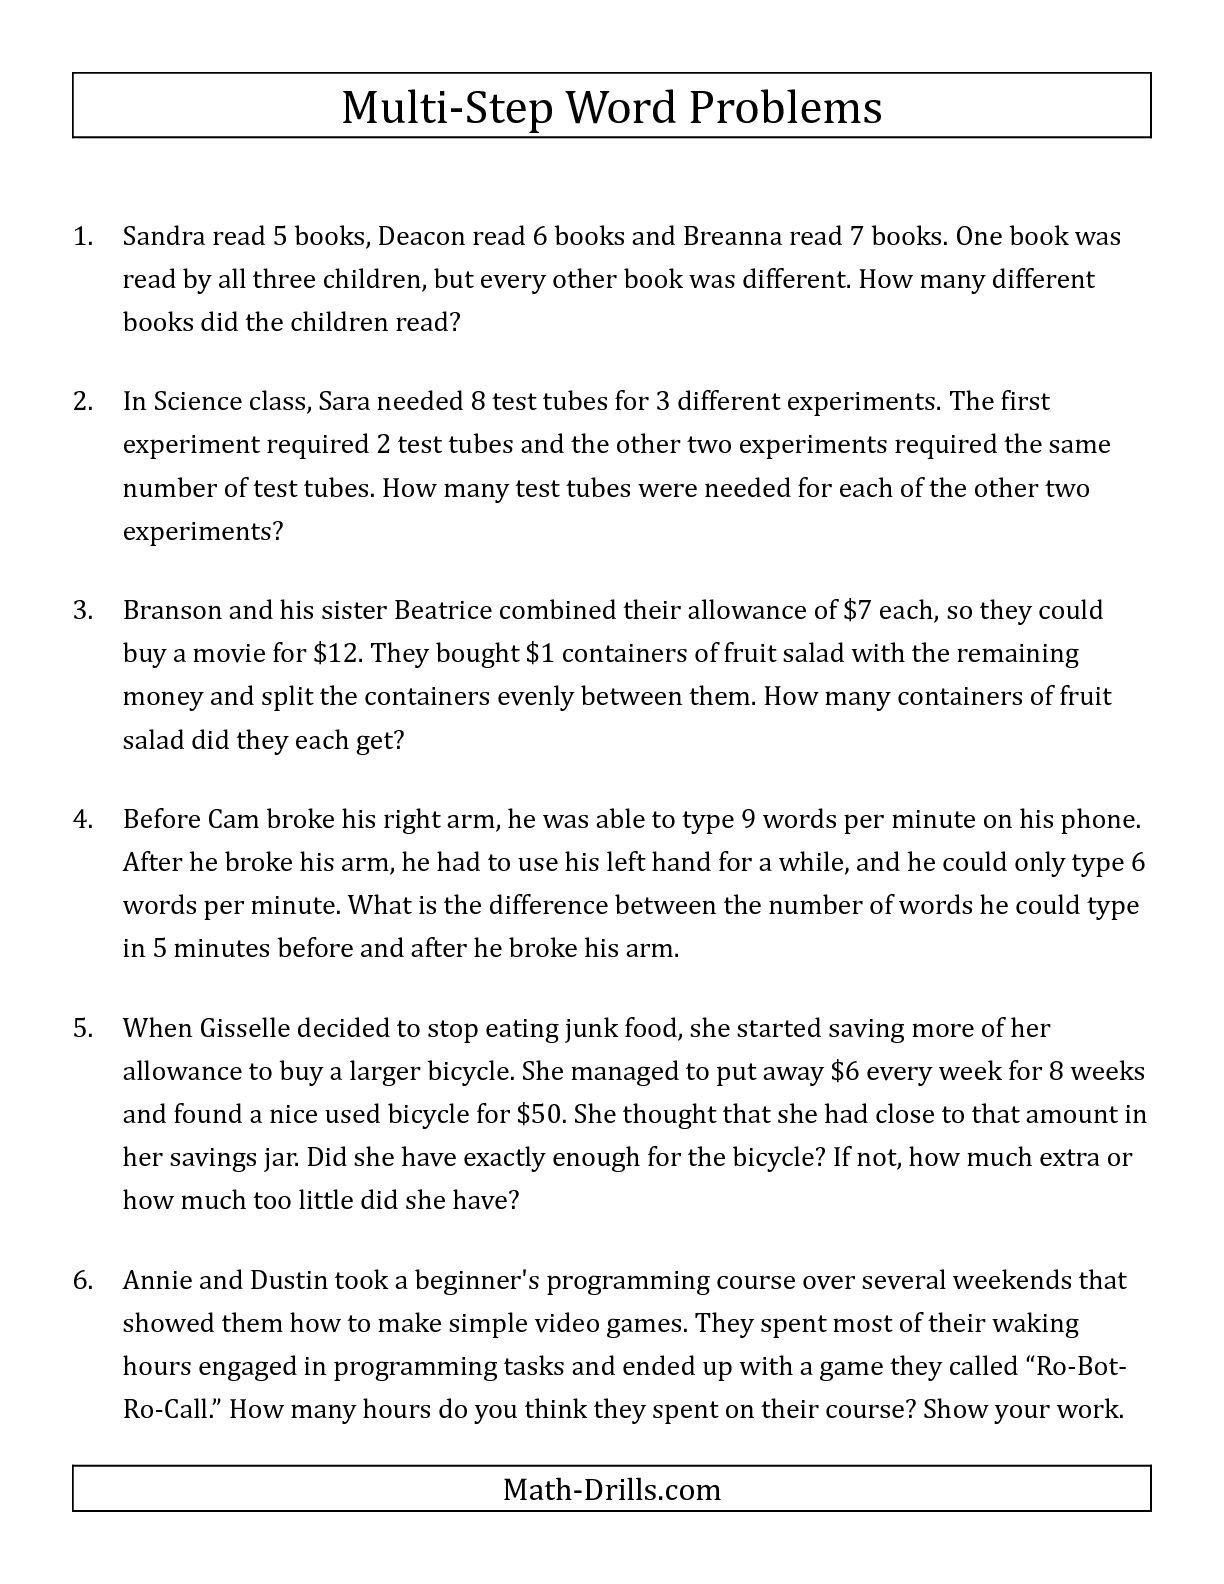 The Easy Multi-Step Word Problems math worksheet from the Word Problems  Worksheets page…   Multi step word problems [ 1584 x 1224 Pixel ]